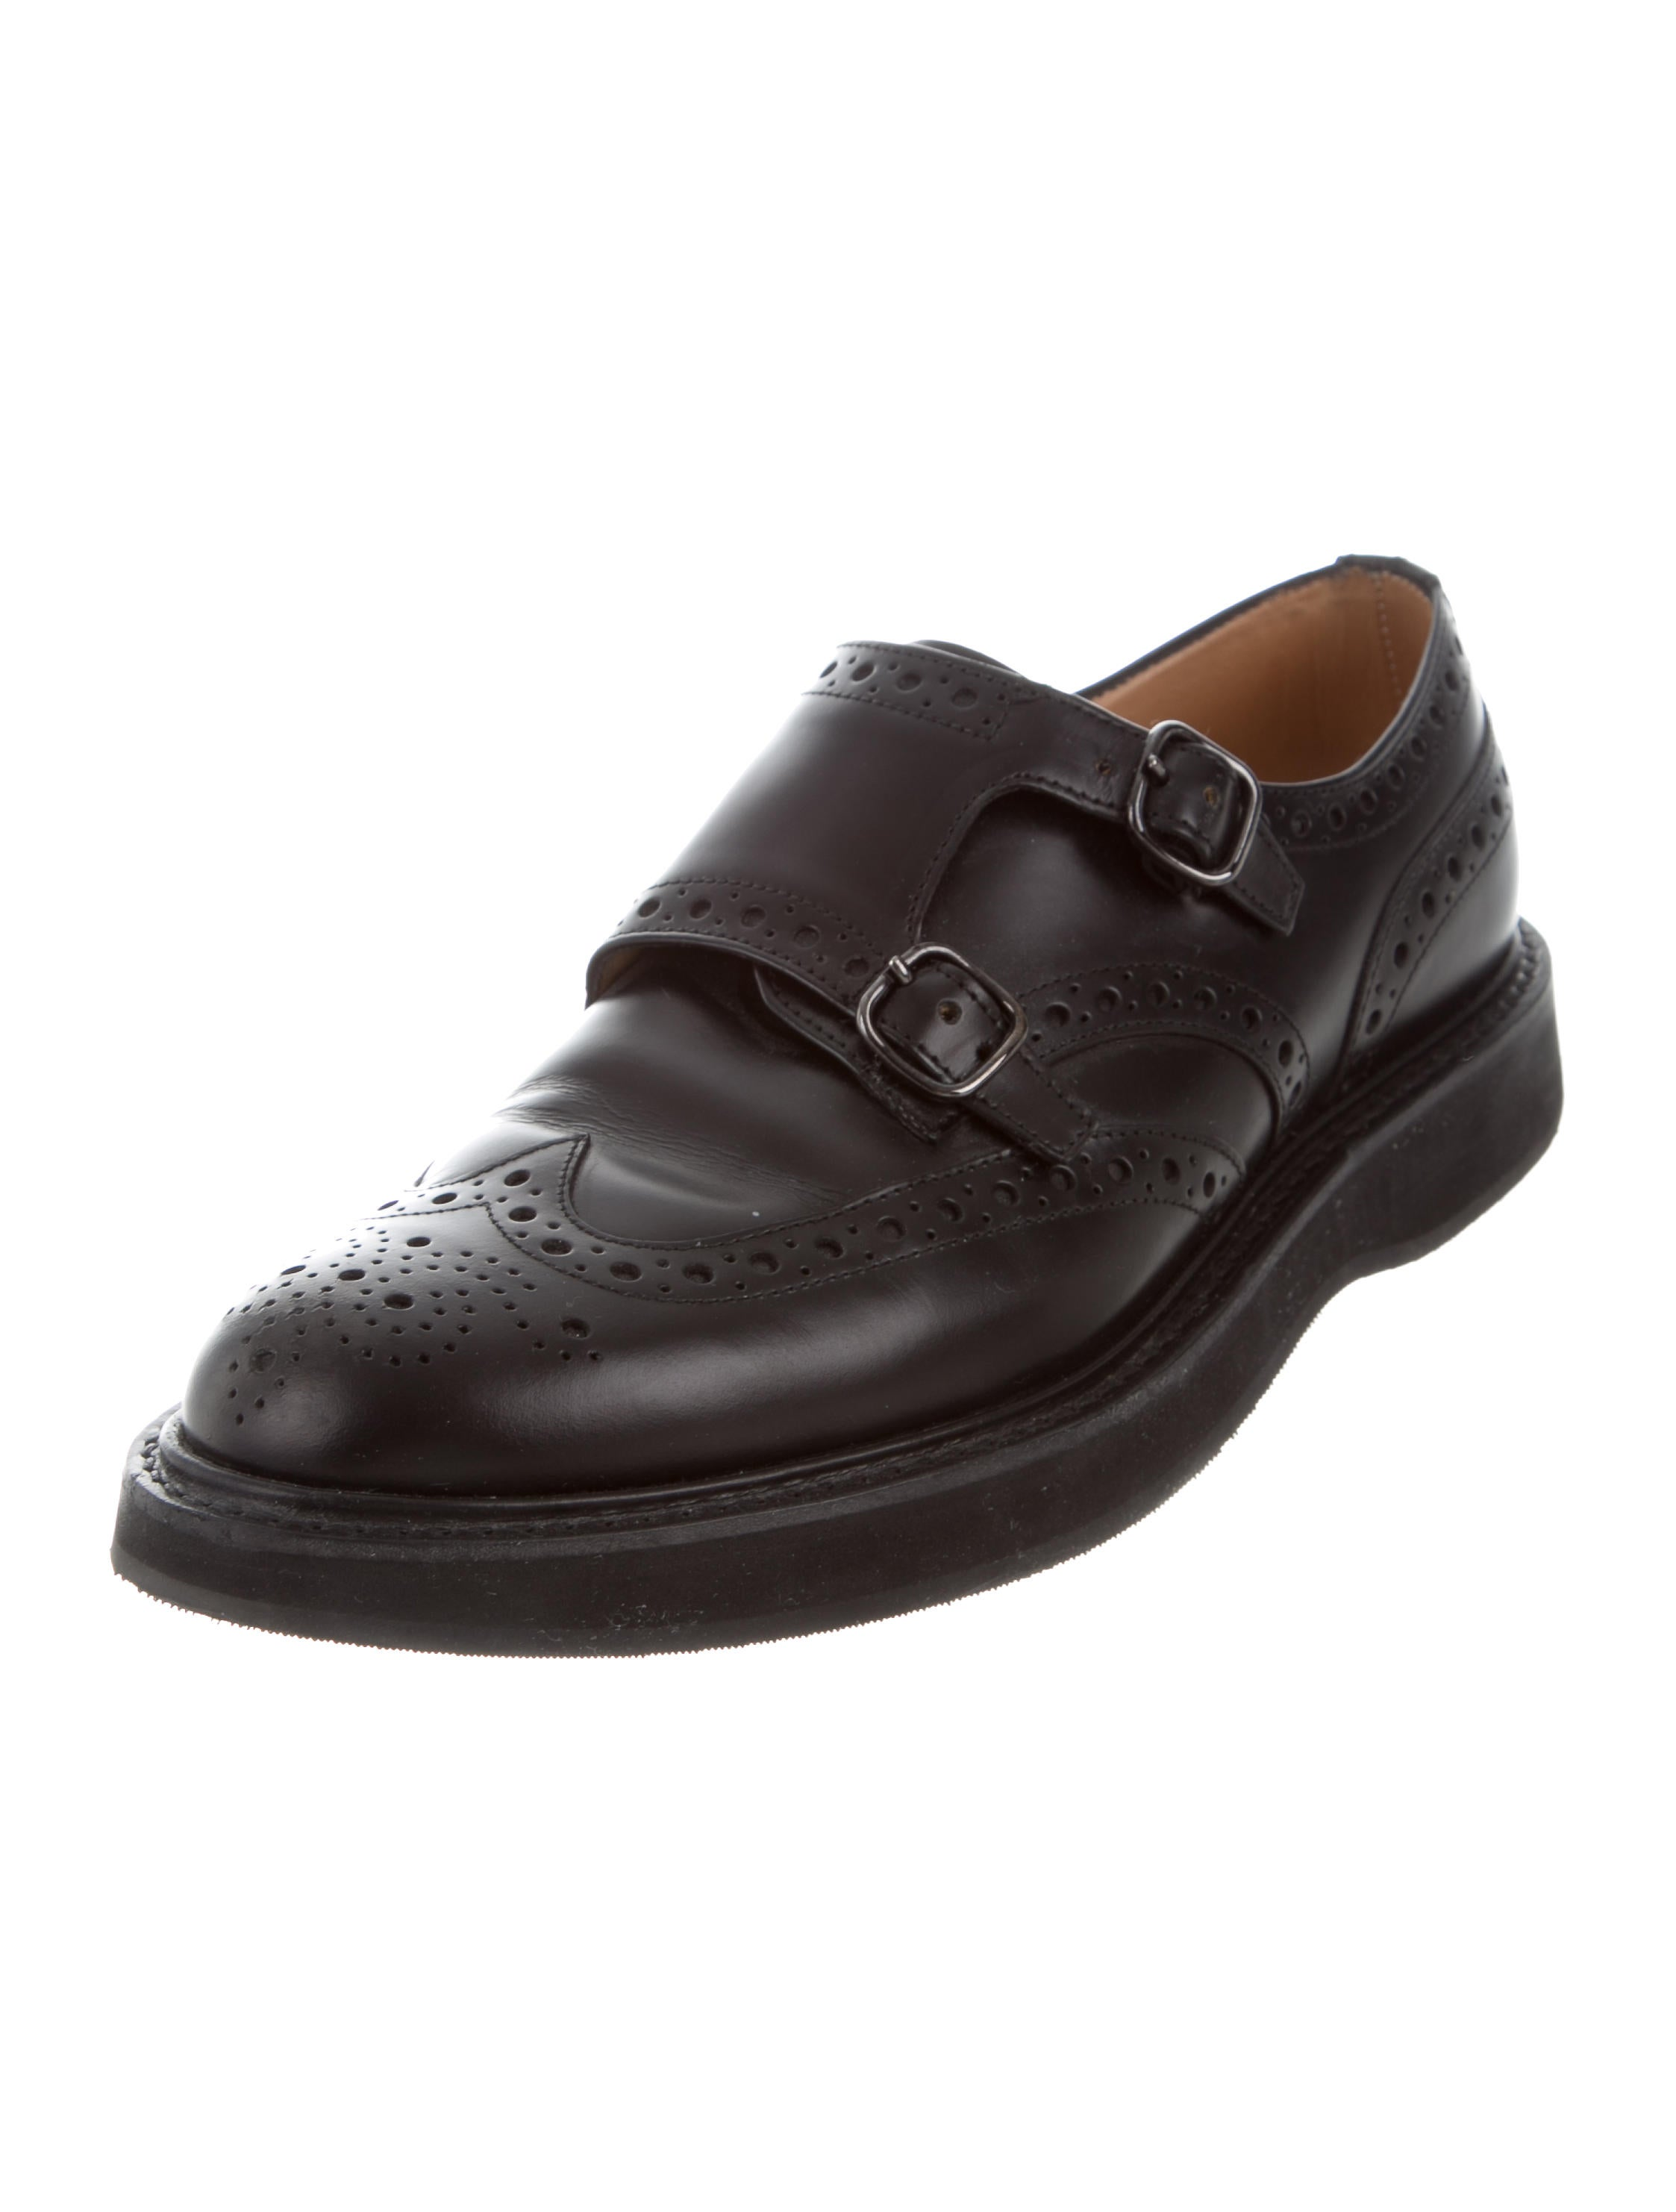 Churchs Leather Wingtip Loafers Shoes CHU20502 The  : CHU205022enlarged from www.therealreal.com size 2246 x 2964 jpeg 181kB